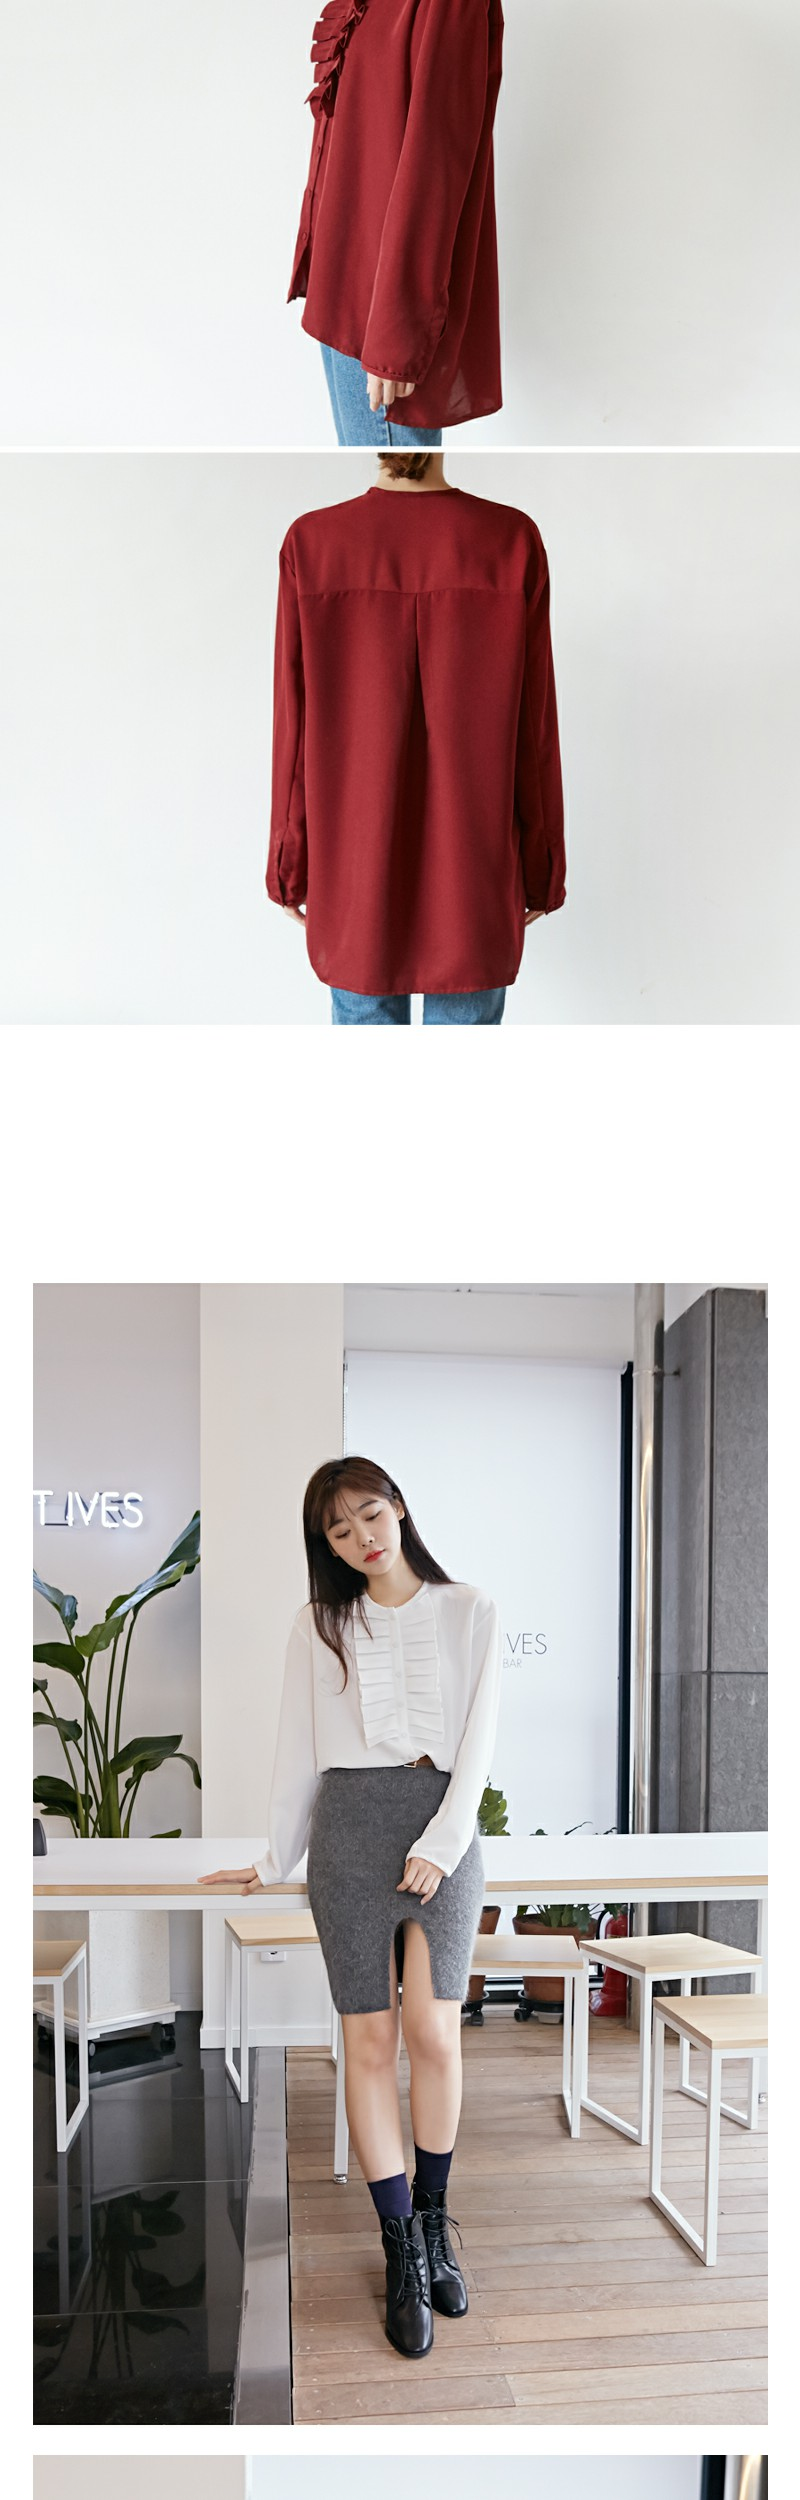 Made_top-138_Silhouette ruffle blouse (size : free)